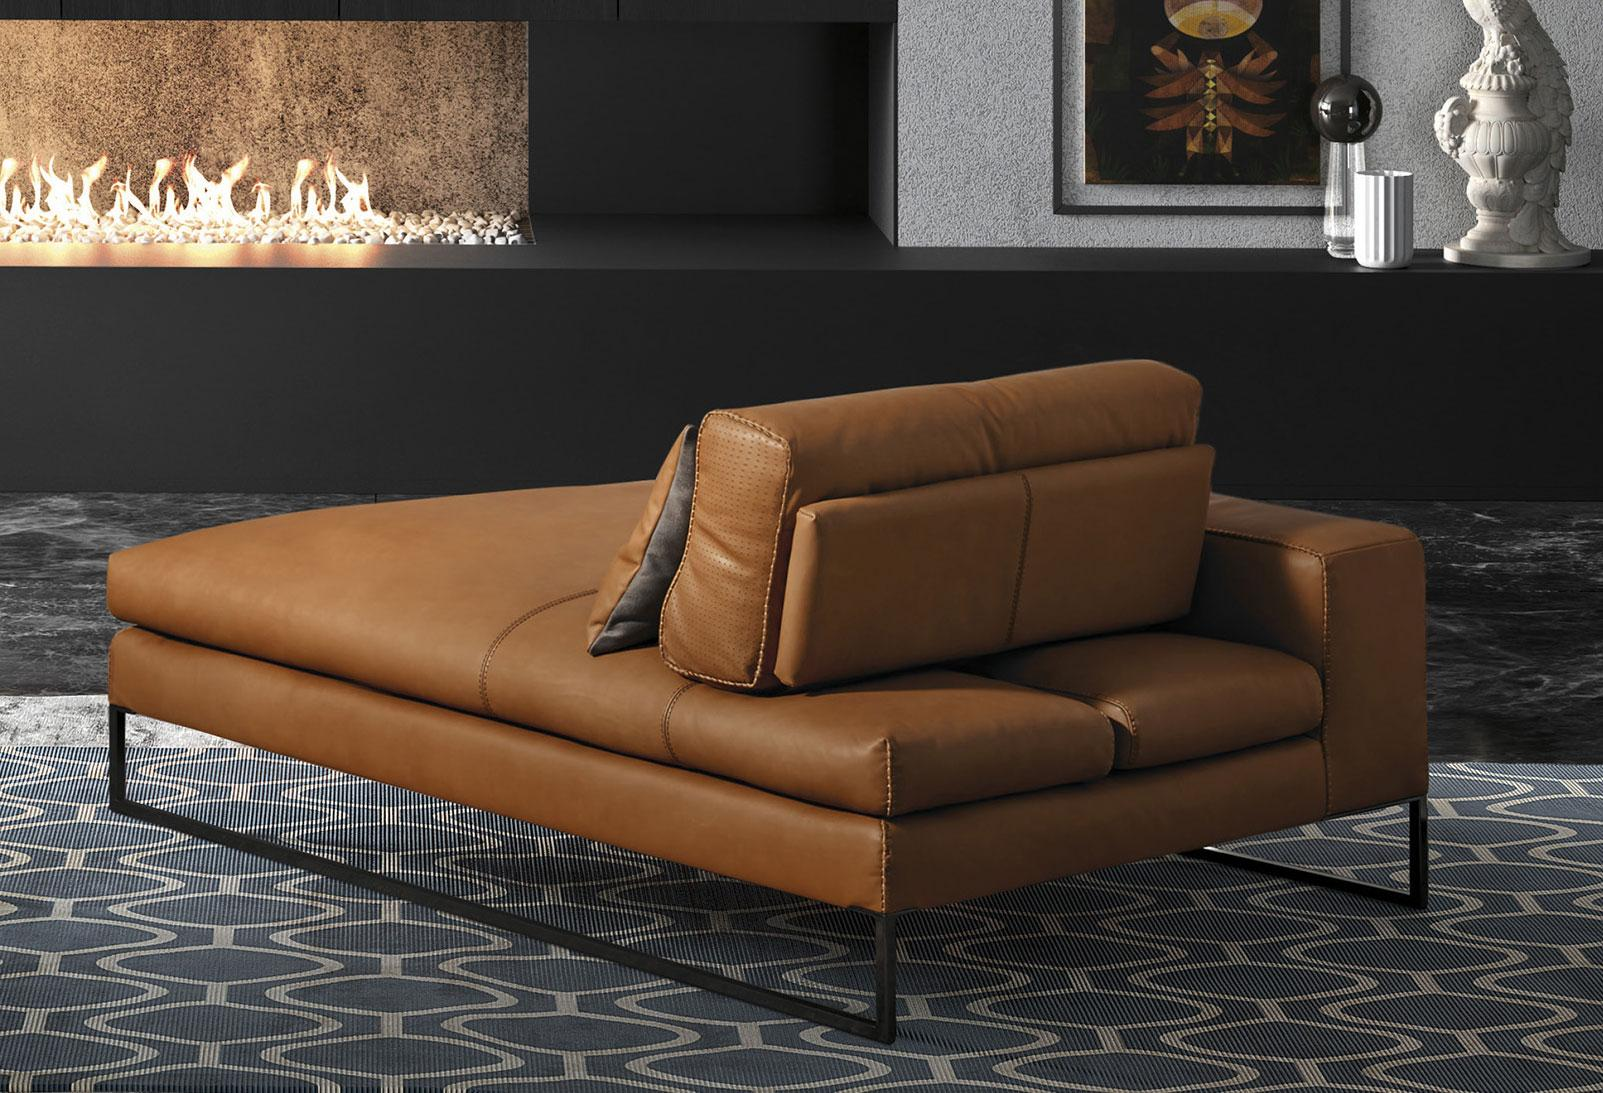 sofa delivery italia leather online couch furniture stores shops choice design factors sale home house italia market makers retailers chaise longue